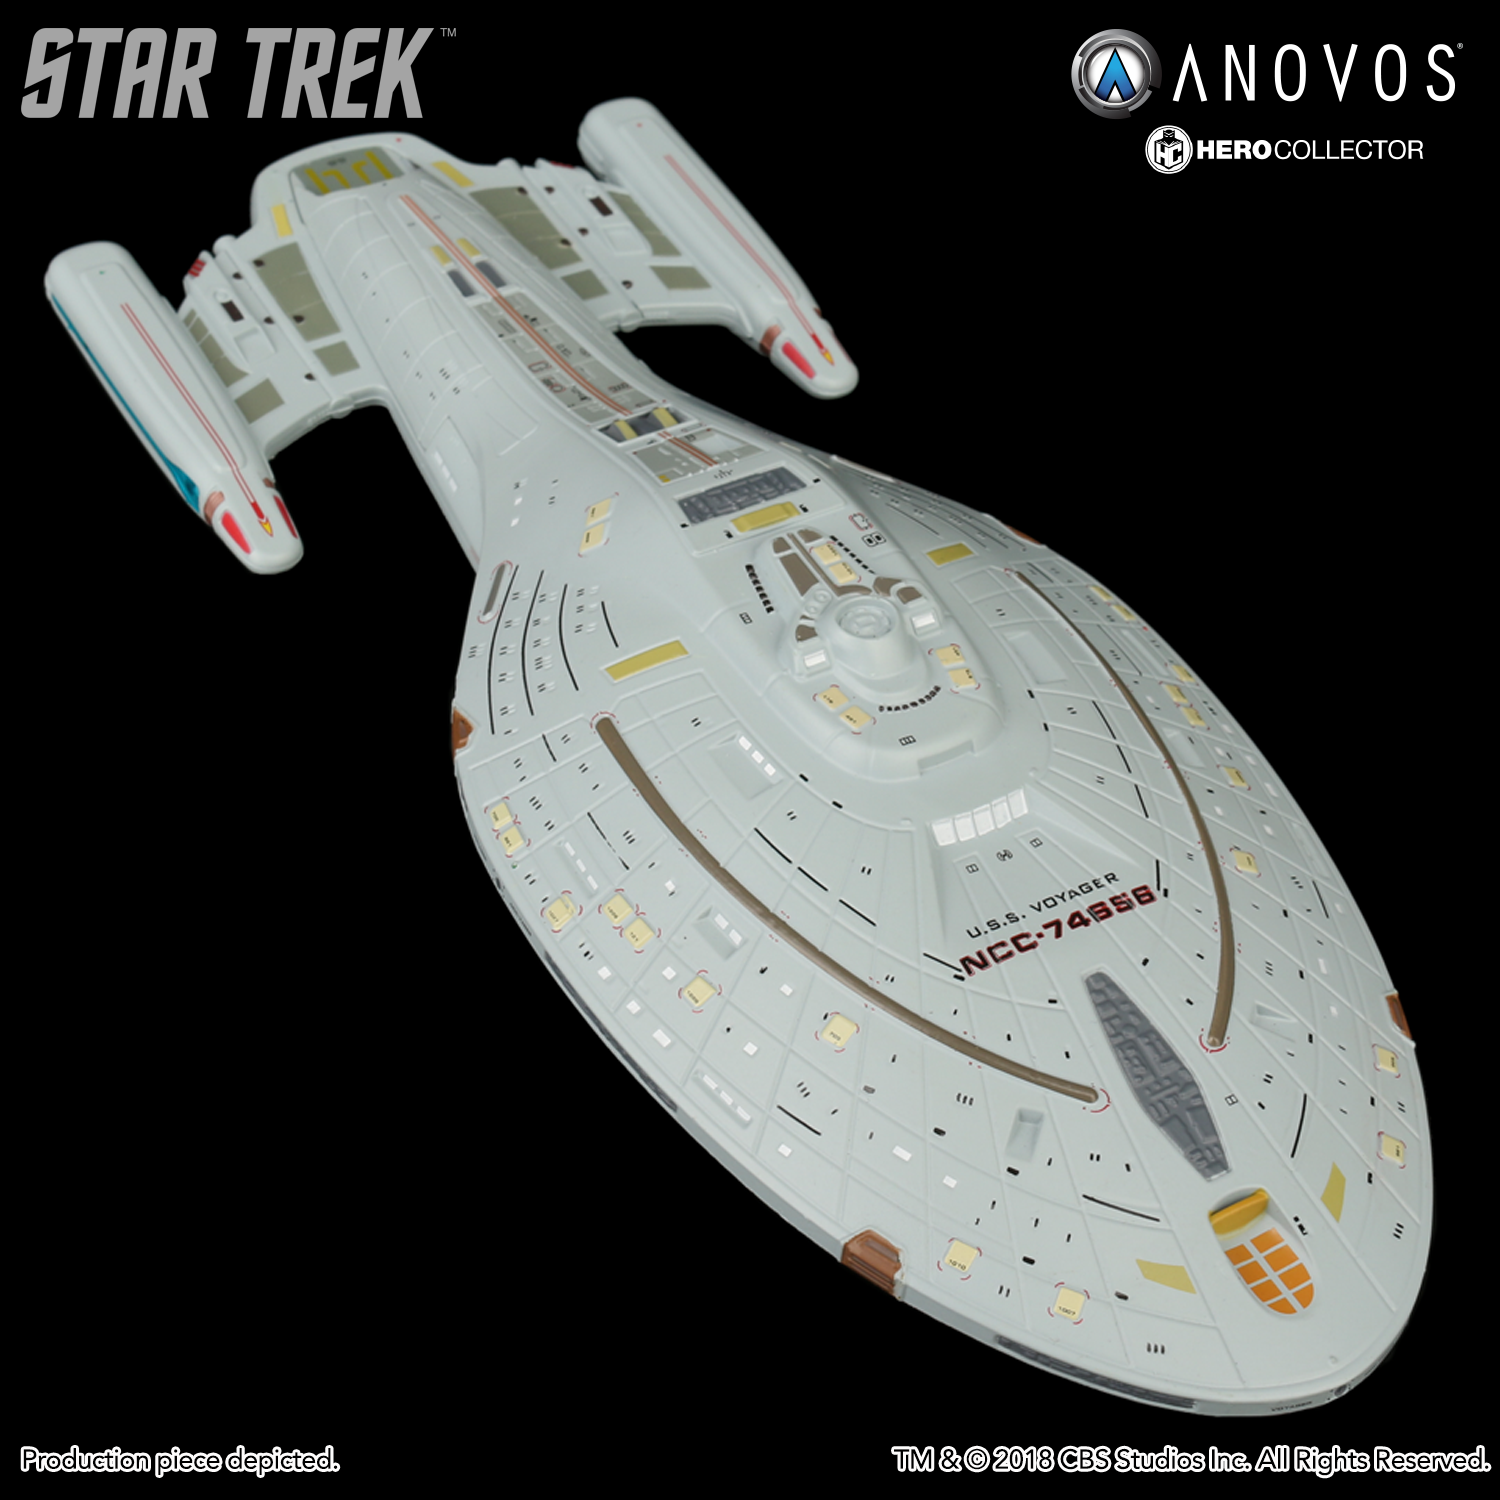 Star Trek Voyager Uss Voyager Ncc 74656 Collectible Xl Edition Ship Model Reservation